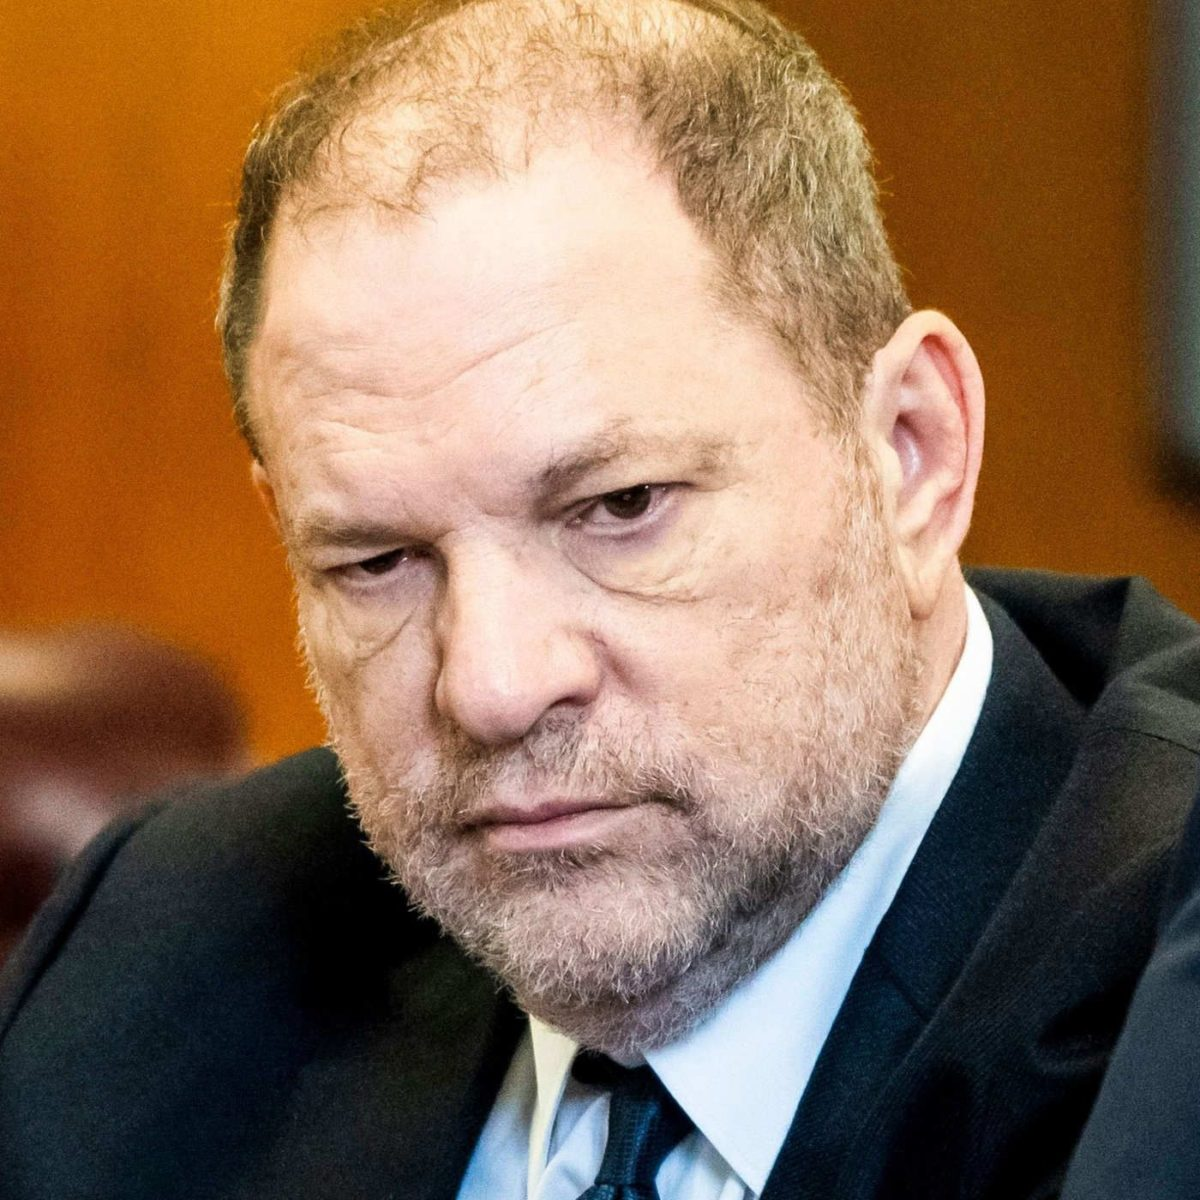 Harvey Weinstein faced sexual misconduct charges by multiple women